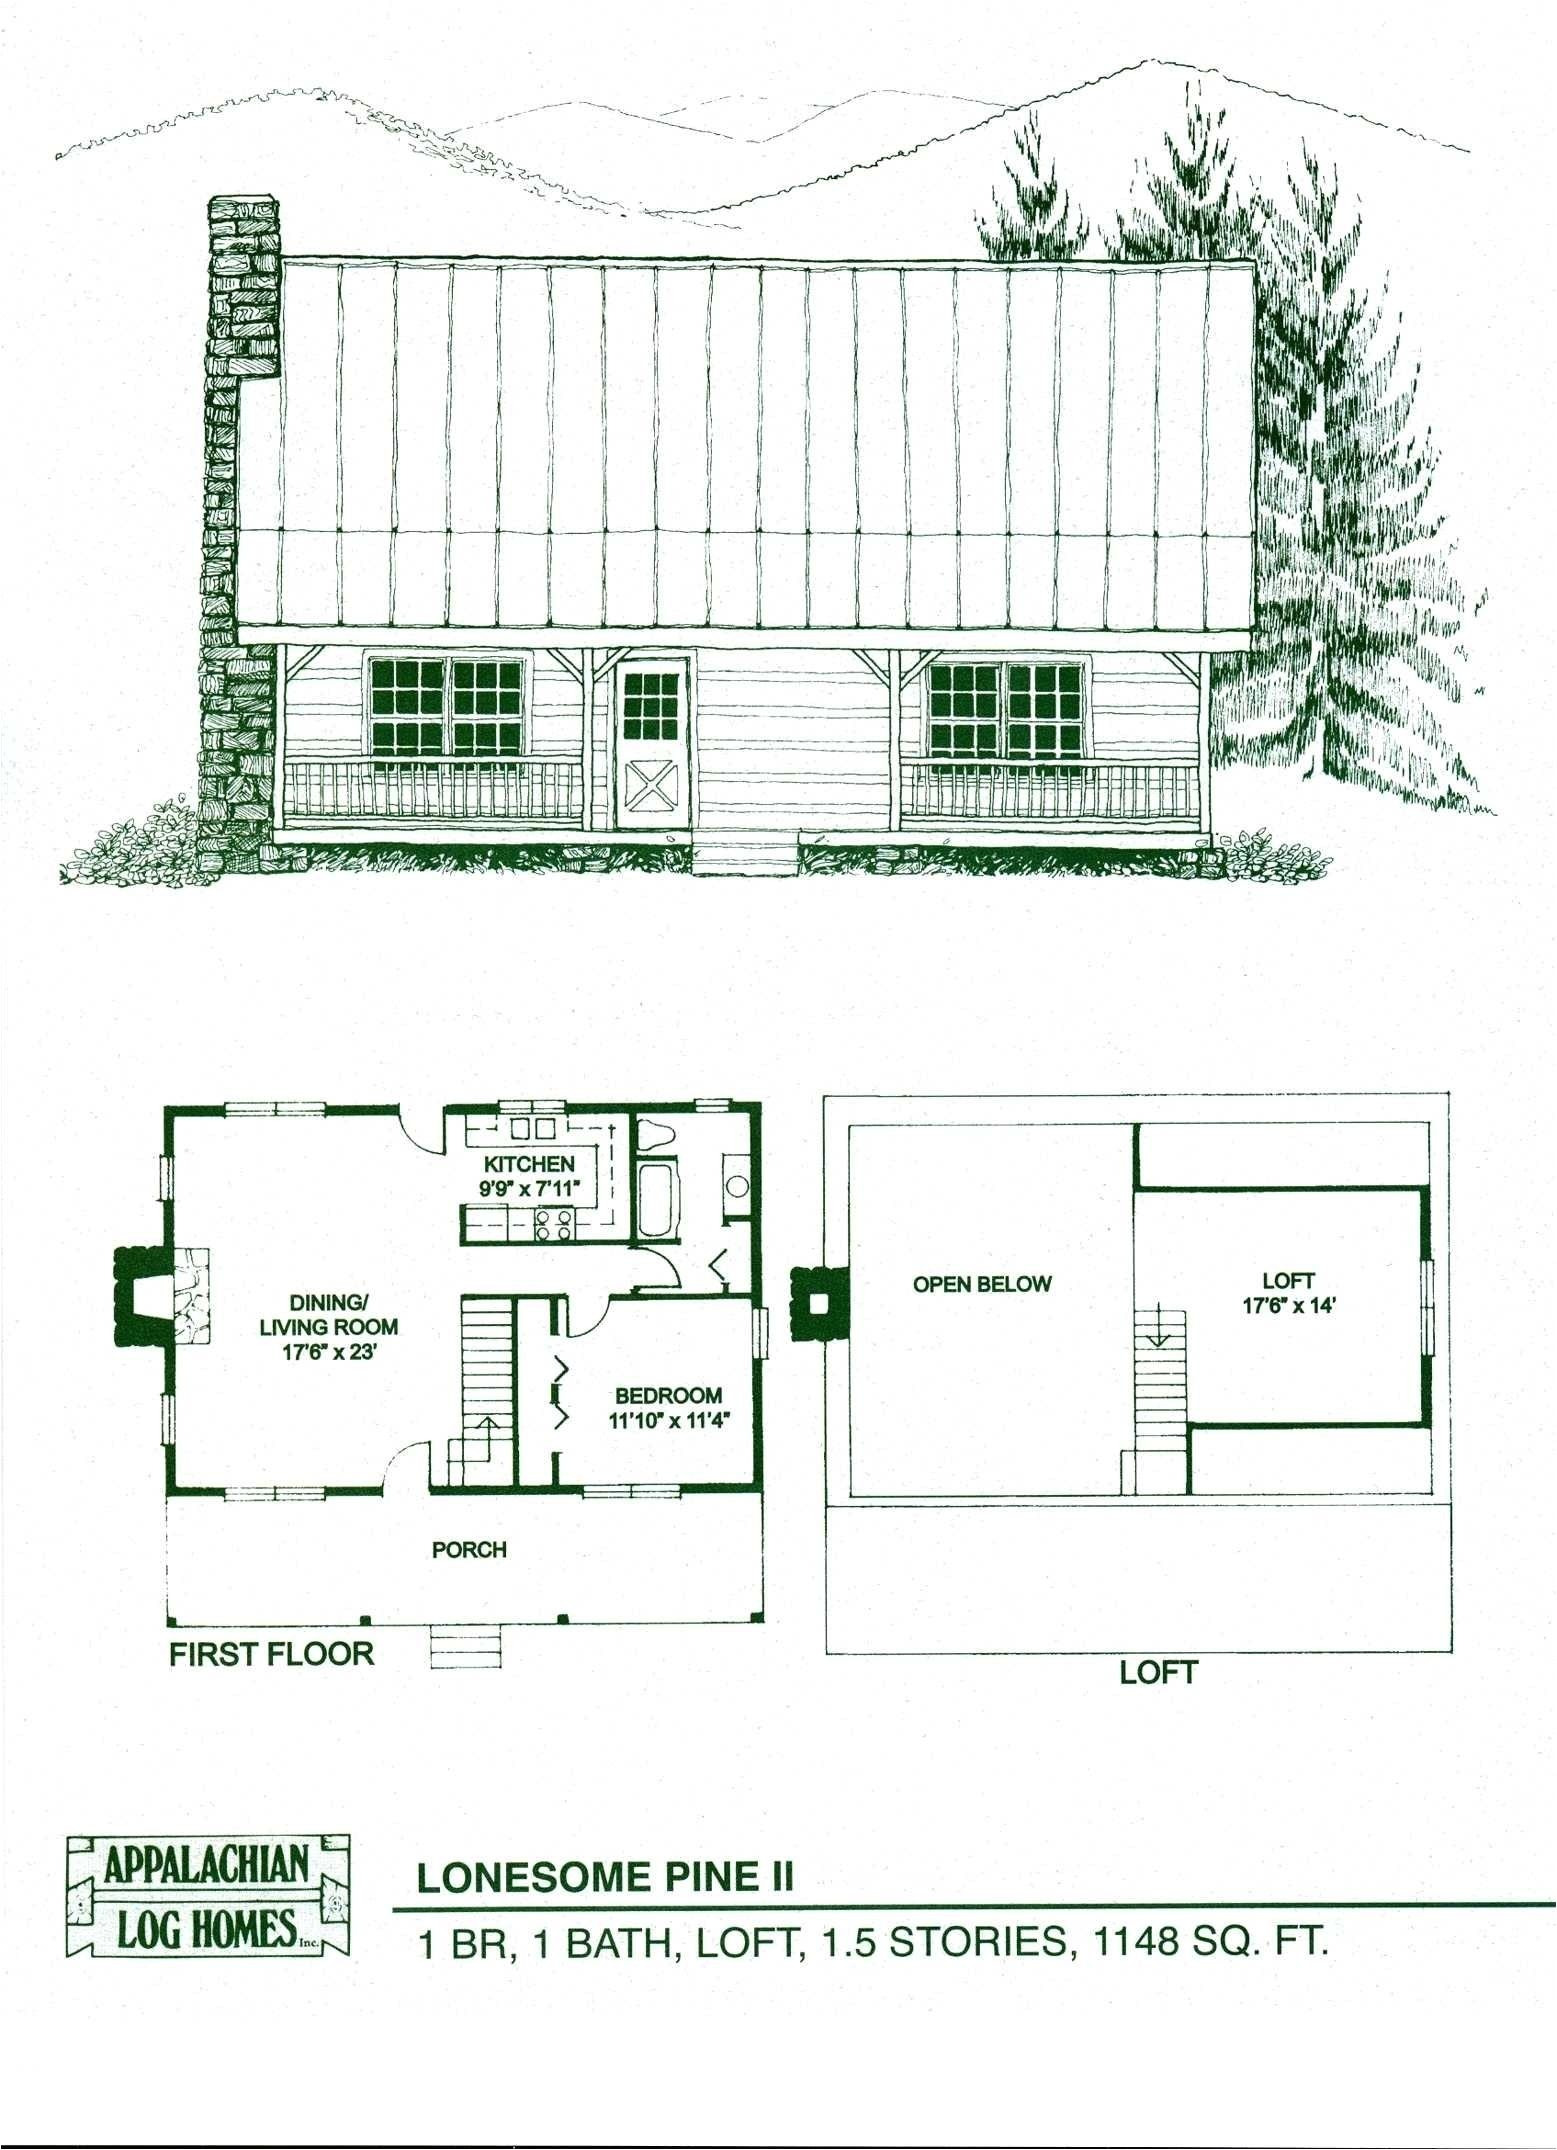 Build A House for 150k Luxury House Plans Under 150k to Build